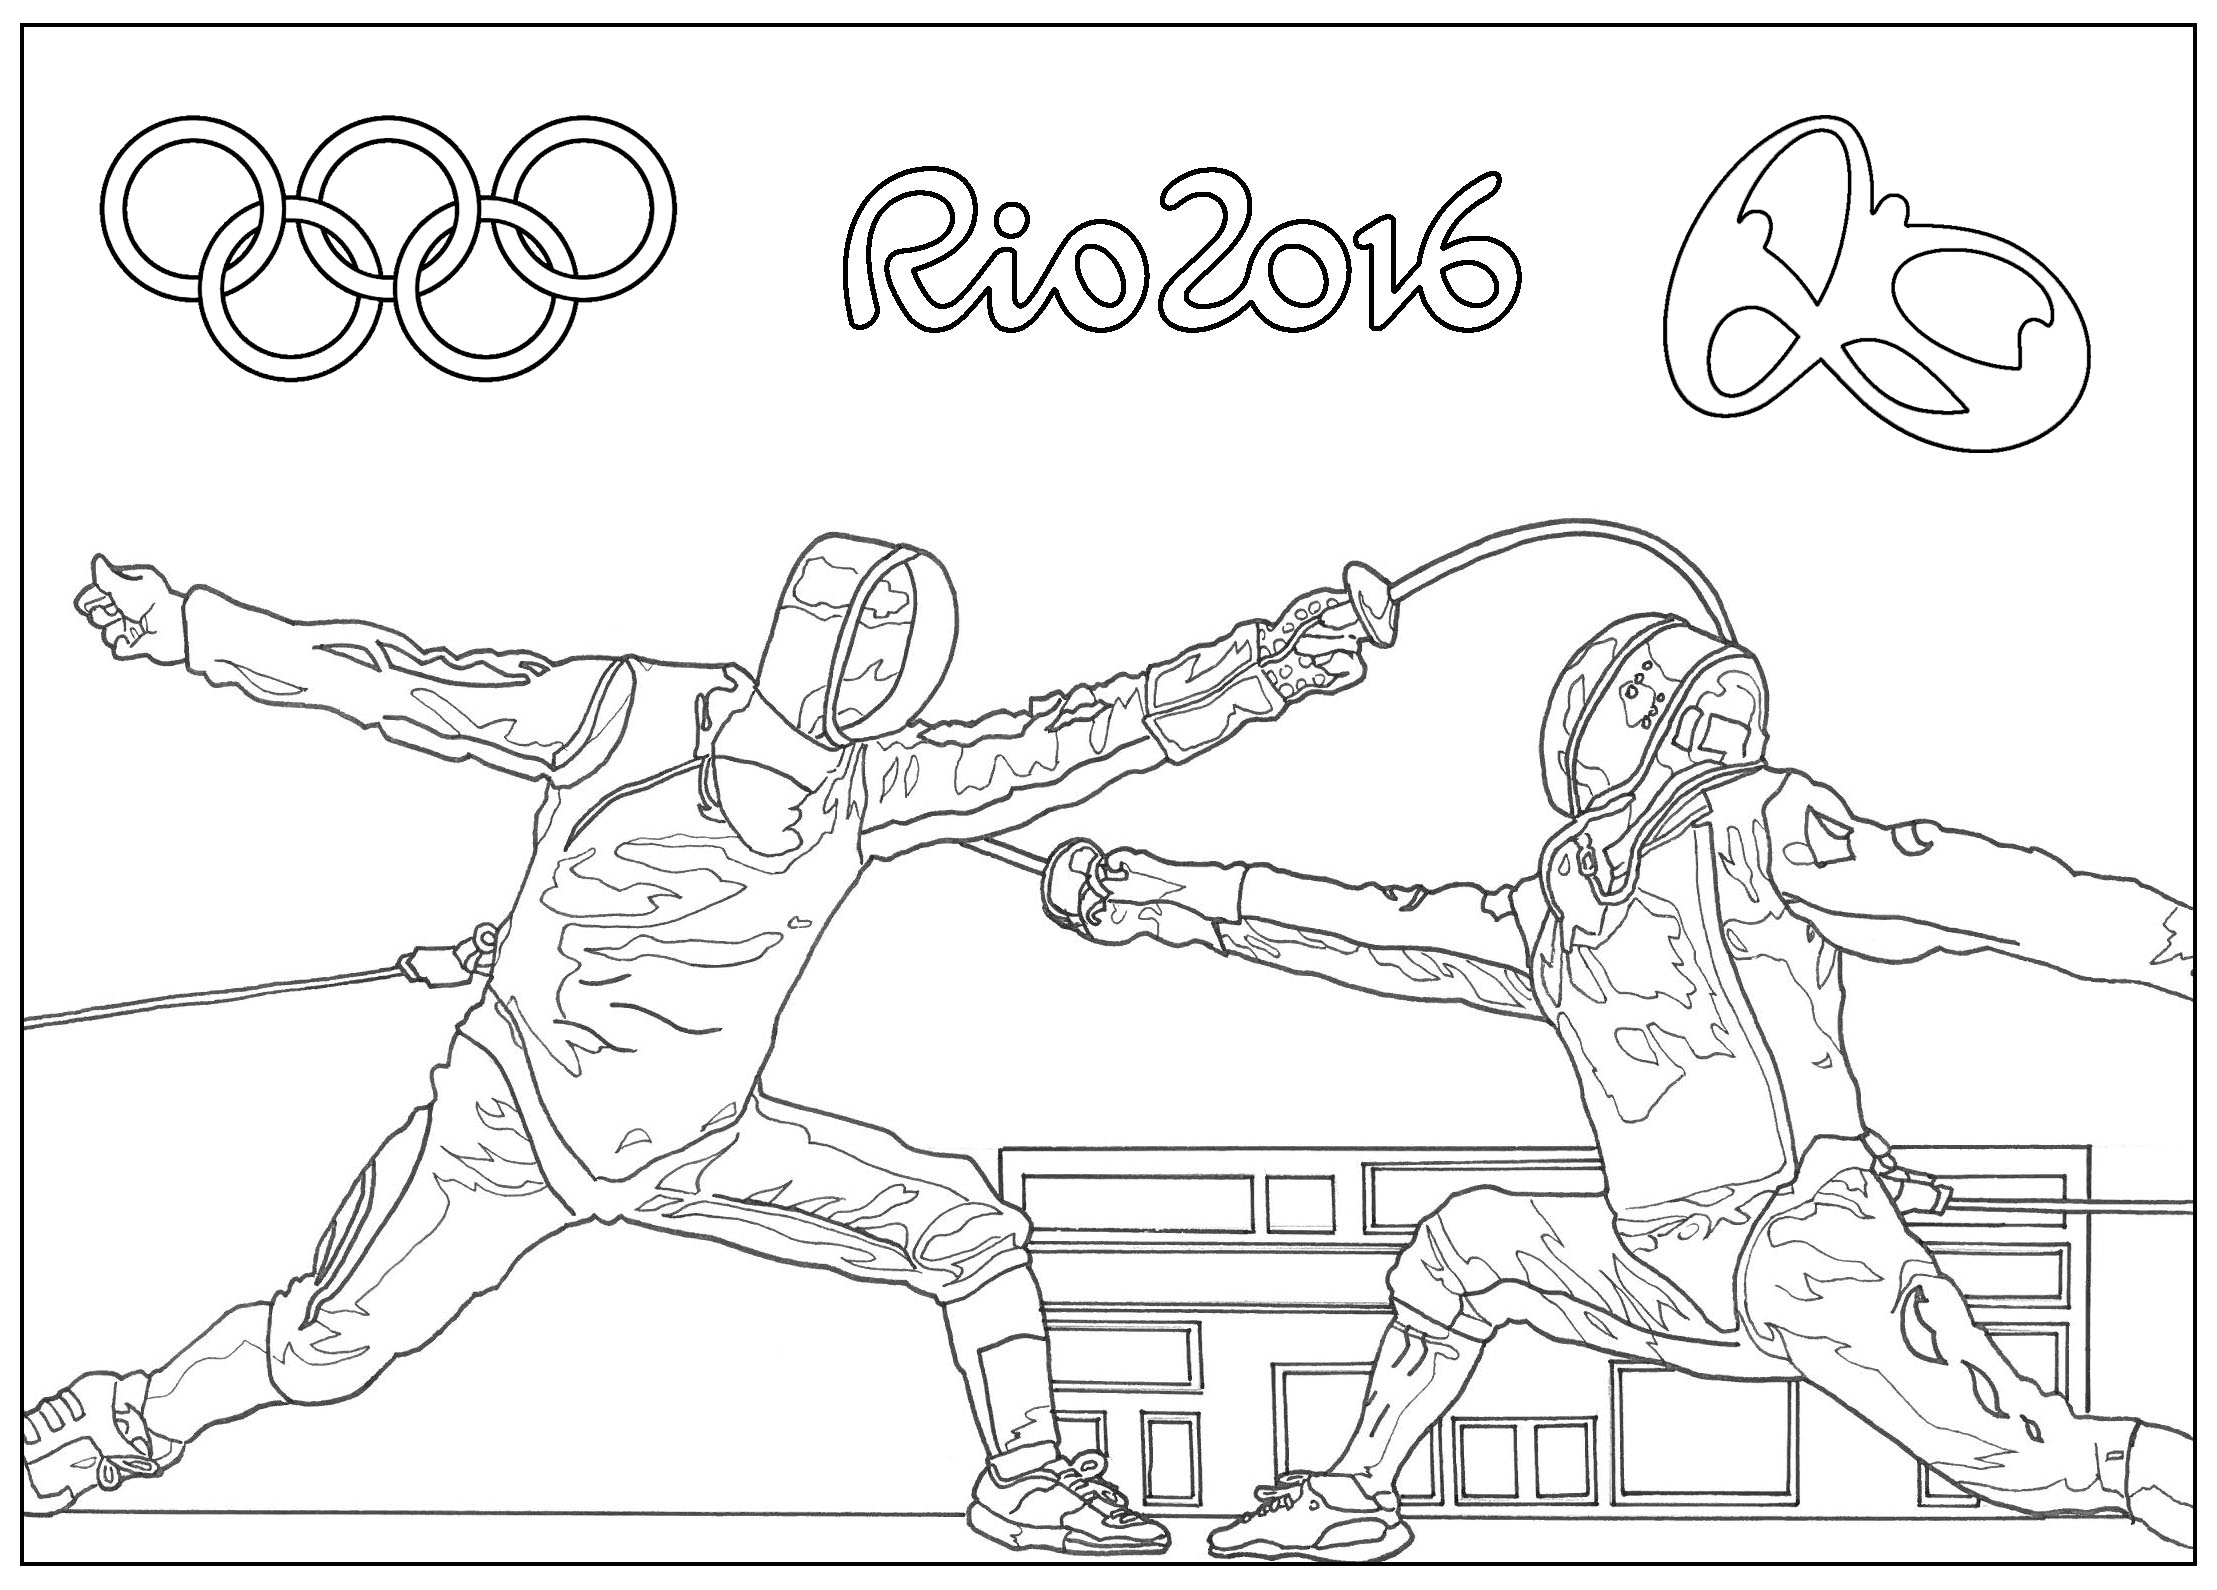 Rio 2016 Olympic Games Fencing Olympic & Sport Adult Coloring Pages Collection Of Special Olympics Coloring Pages Inspirational Olympic torch Coloring Download